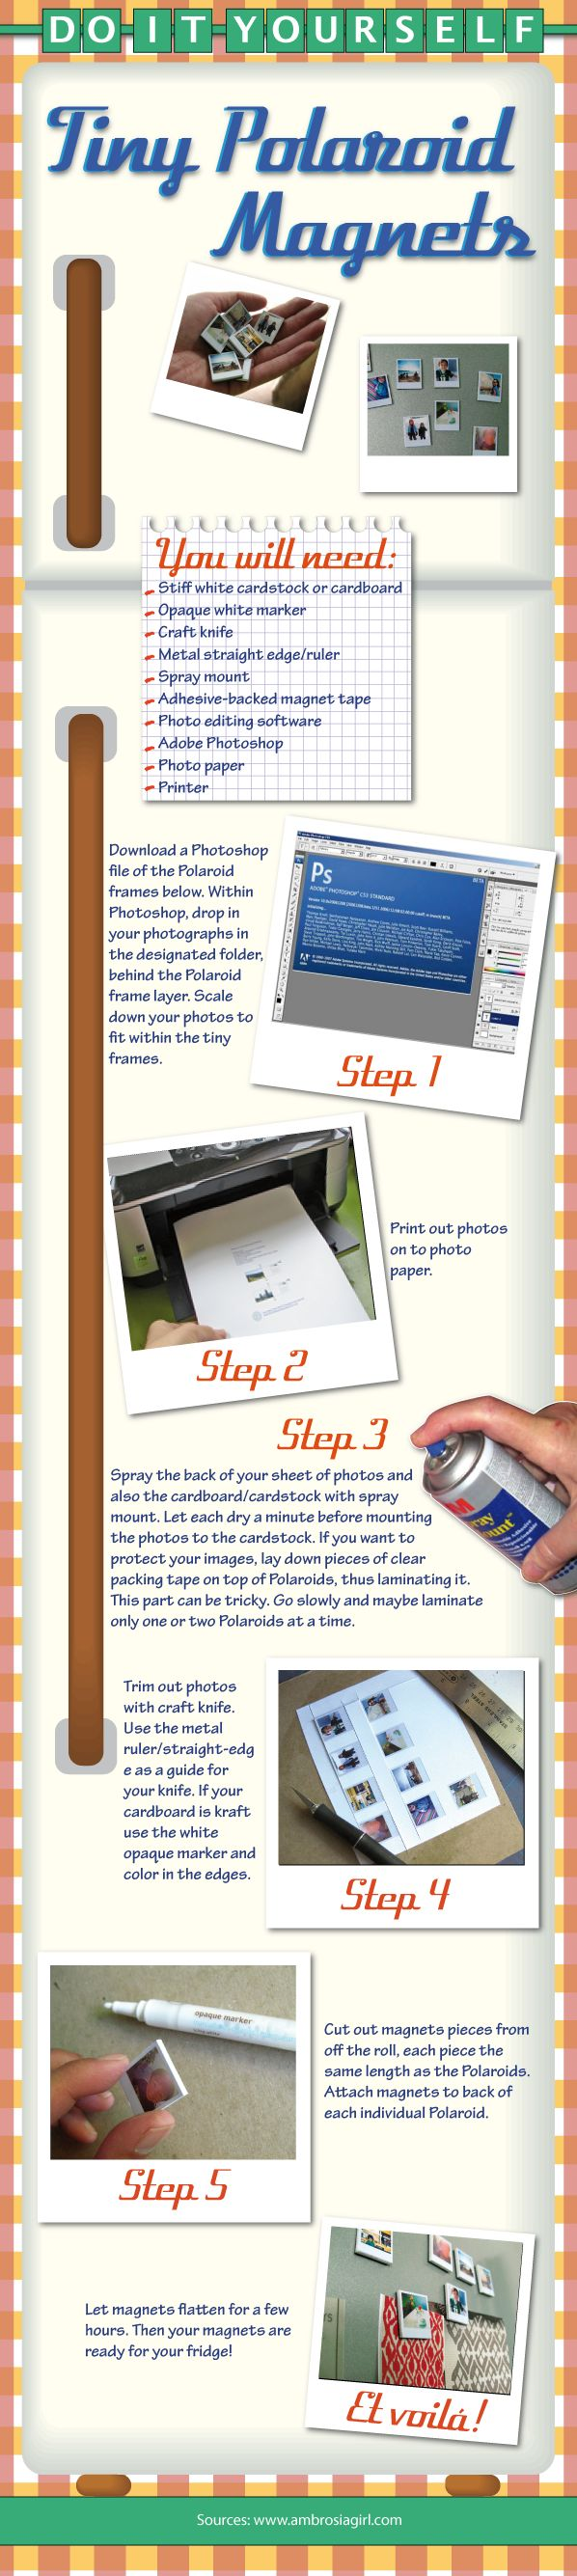 cover your refrigerator with tiny magnet photos that are customized with your family. Great diy project. You gotta have Photoshop for this diy craft work though. I am liking these instructorgraphics...very helpful.